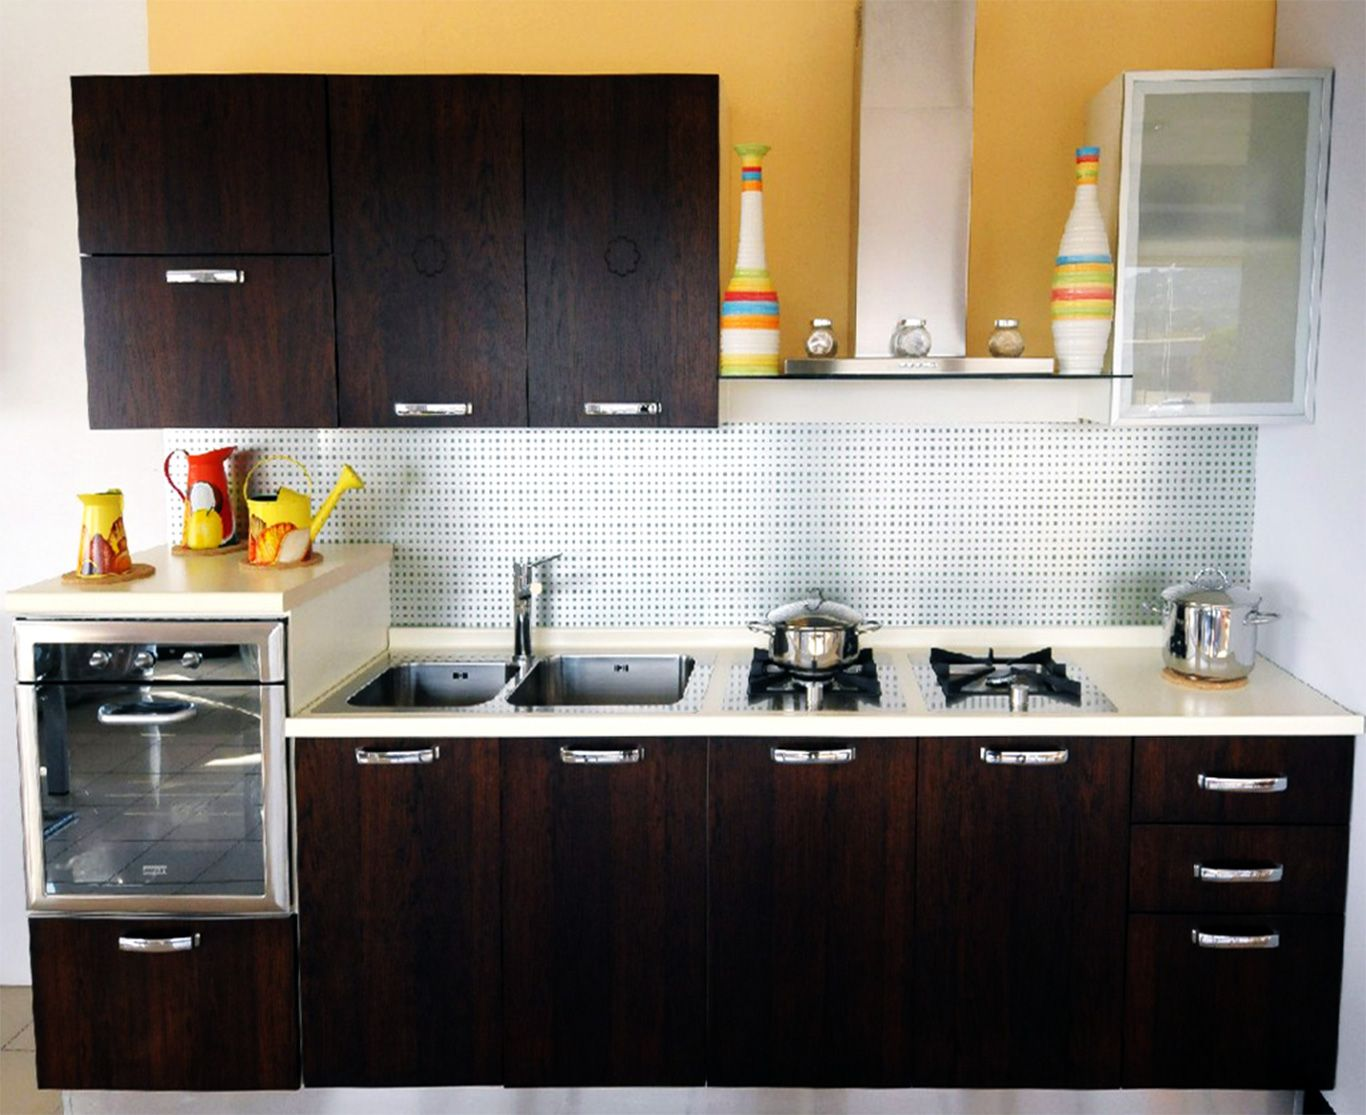 Pune kitchens is the modular kitchen shutters supplier for Basic kitchen remodel ideas